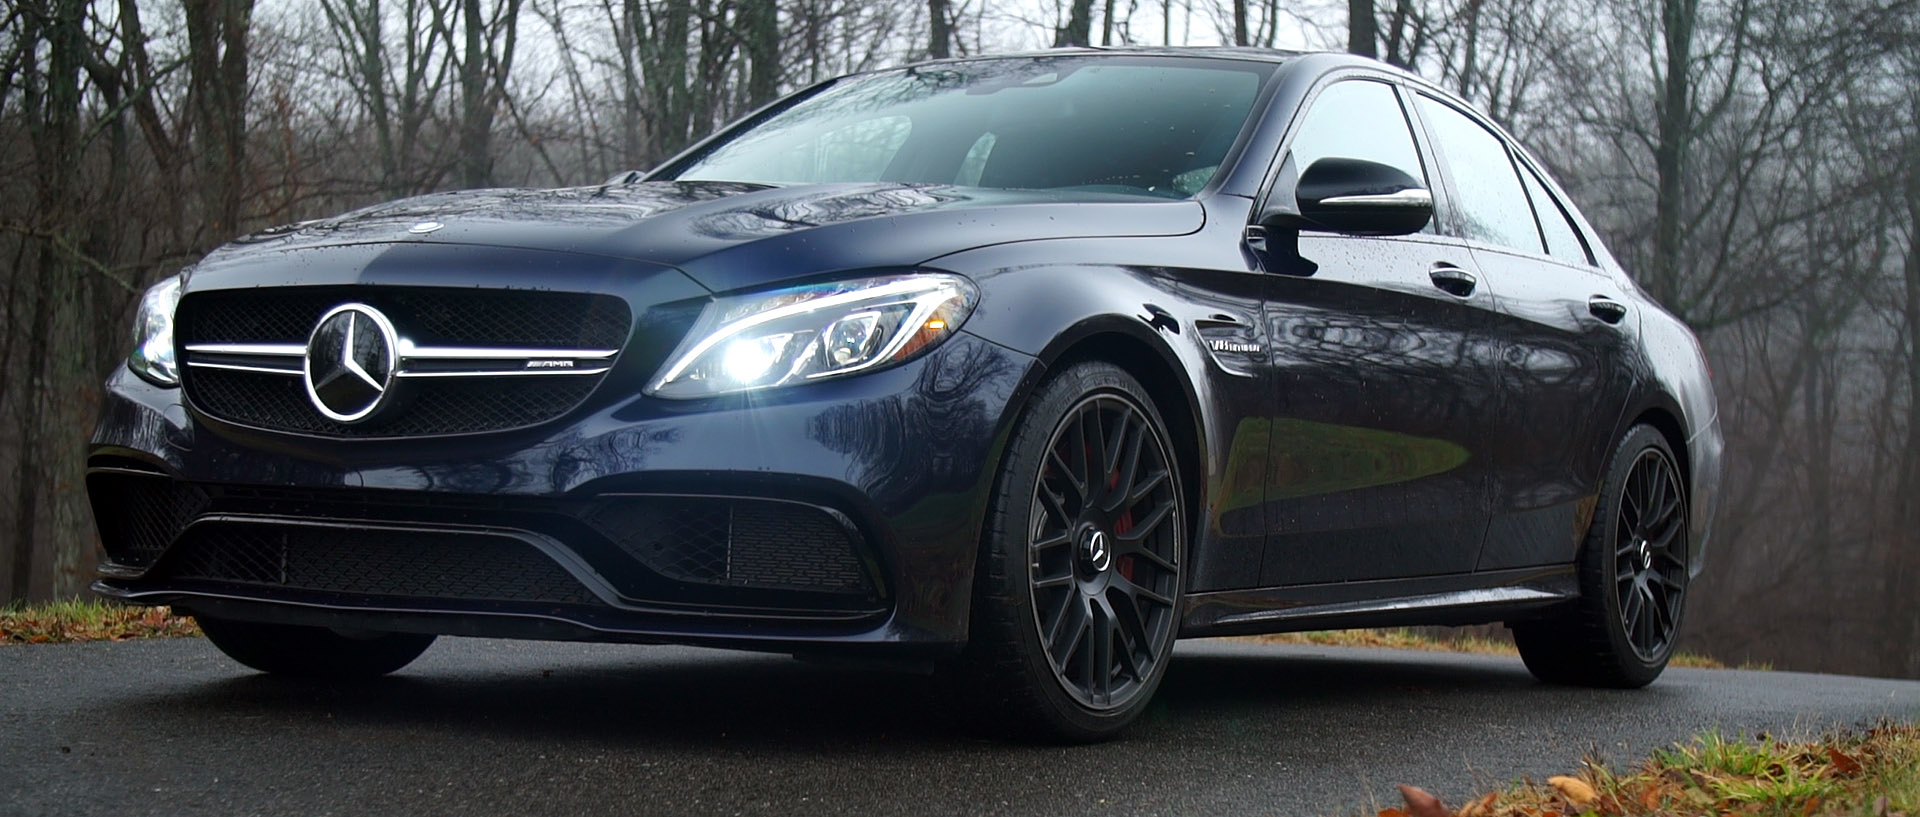 High-Performance 2016 Mercedes-Benz AMG C63 S Impresses Mightily